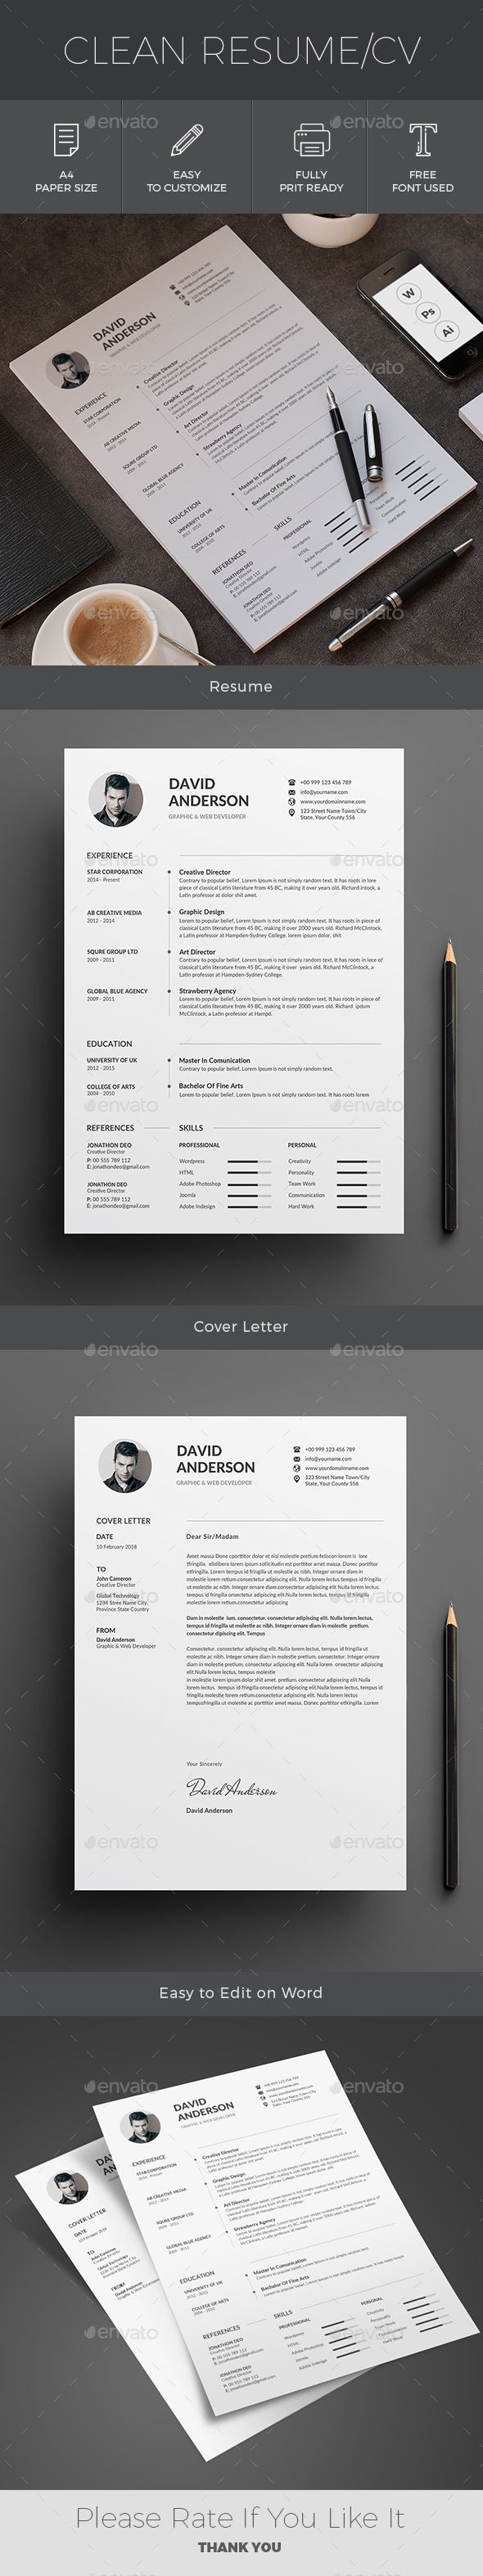 Resume — AI Illustrator #cv template #word • Download ➝ https://graphicriver.net/item/resume/18779120?ref=pxcr